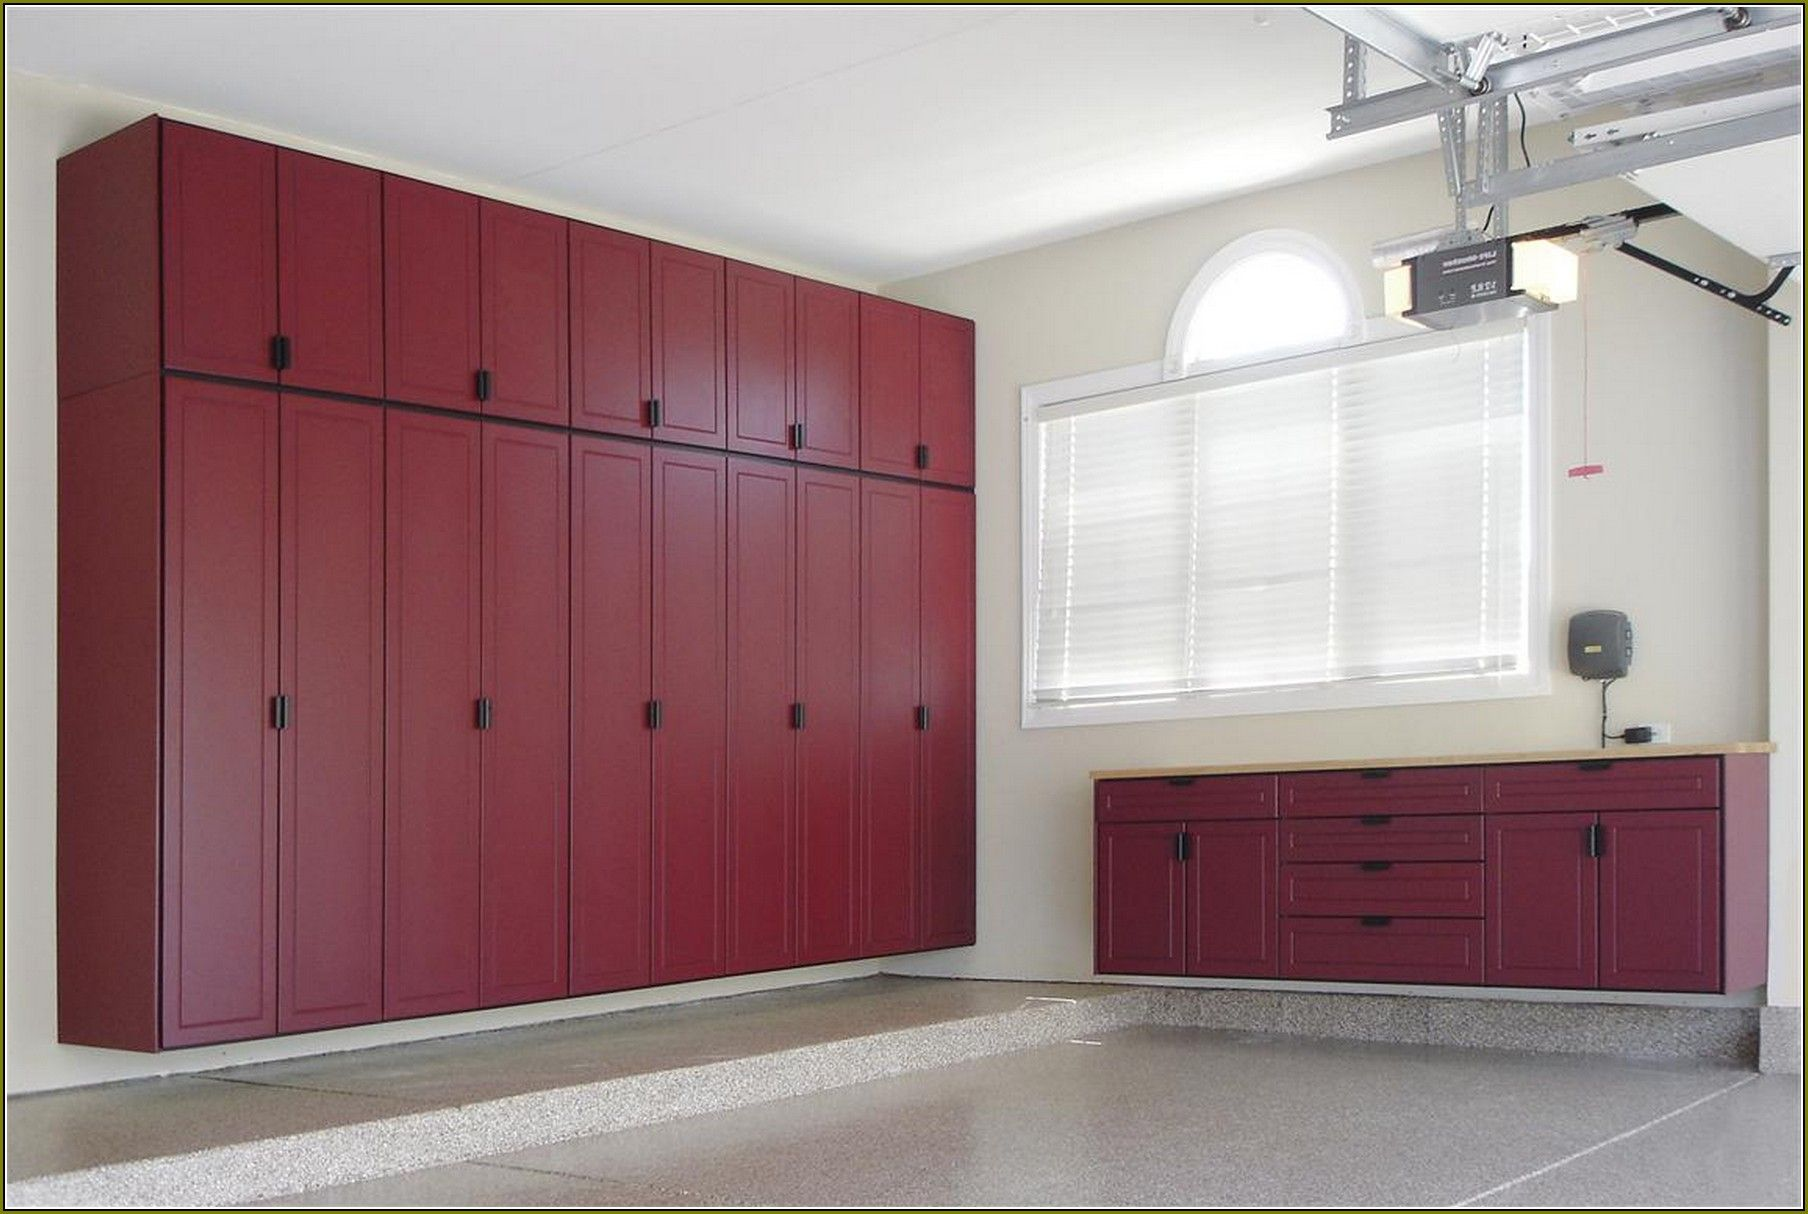 Garage Cabinets Plans Plywood Garage Cabinets Diy Garage